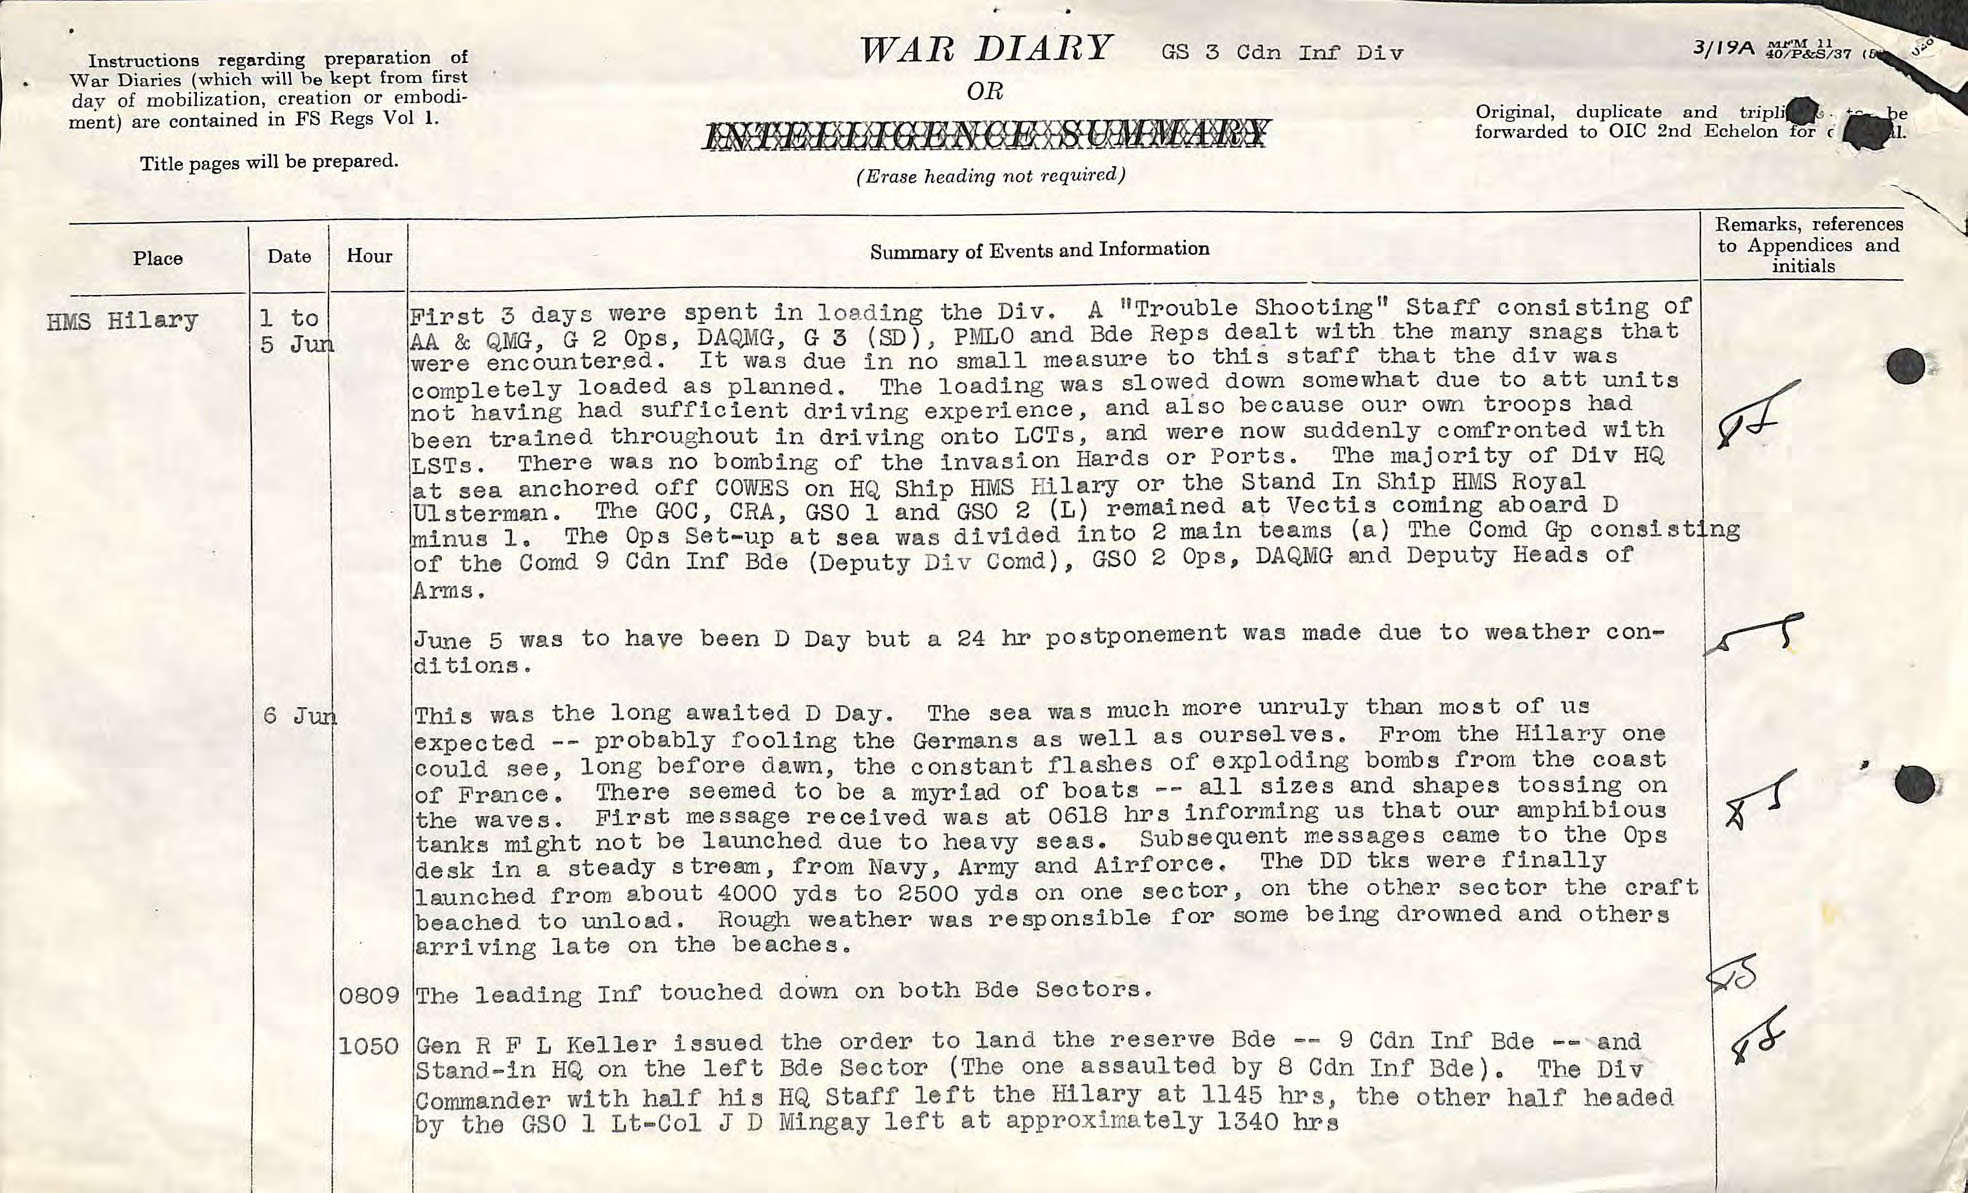 : A colour digitized image of a typescript account of D-Day operations.